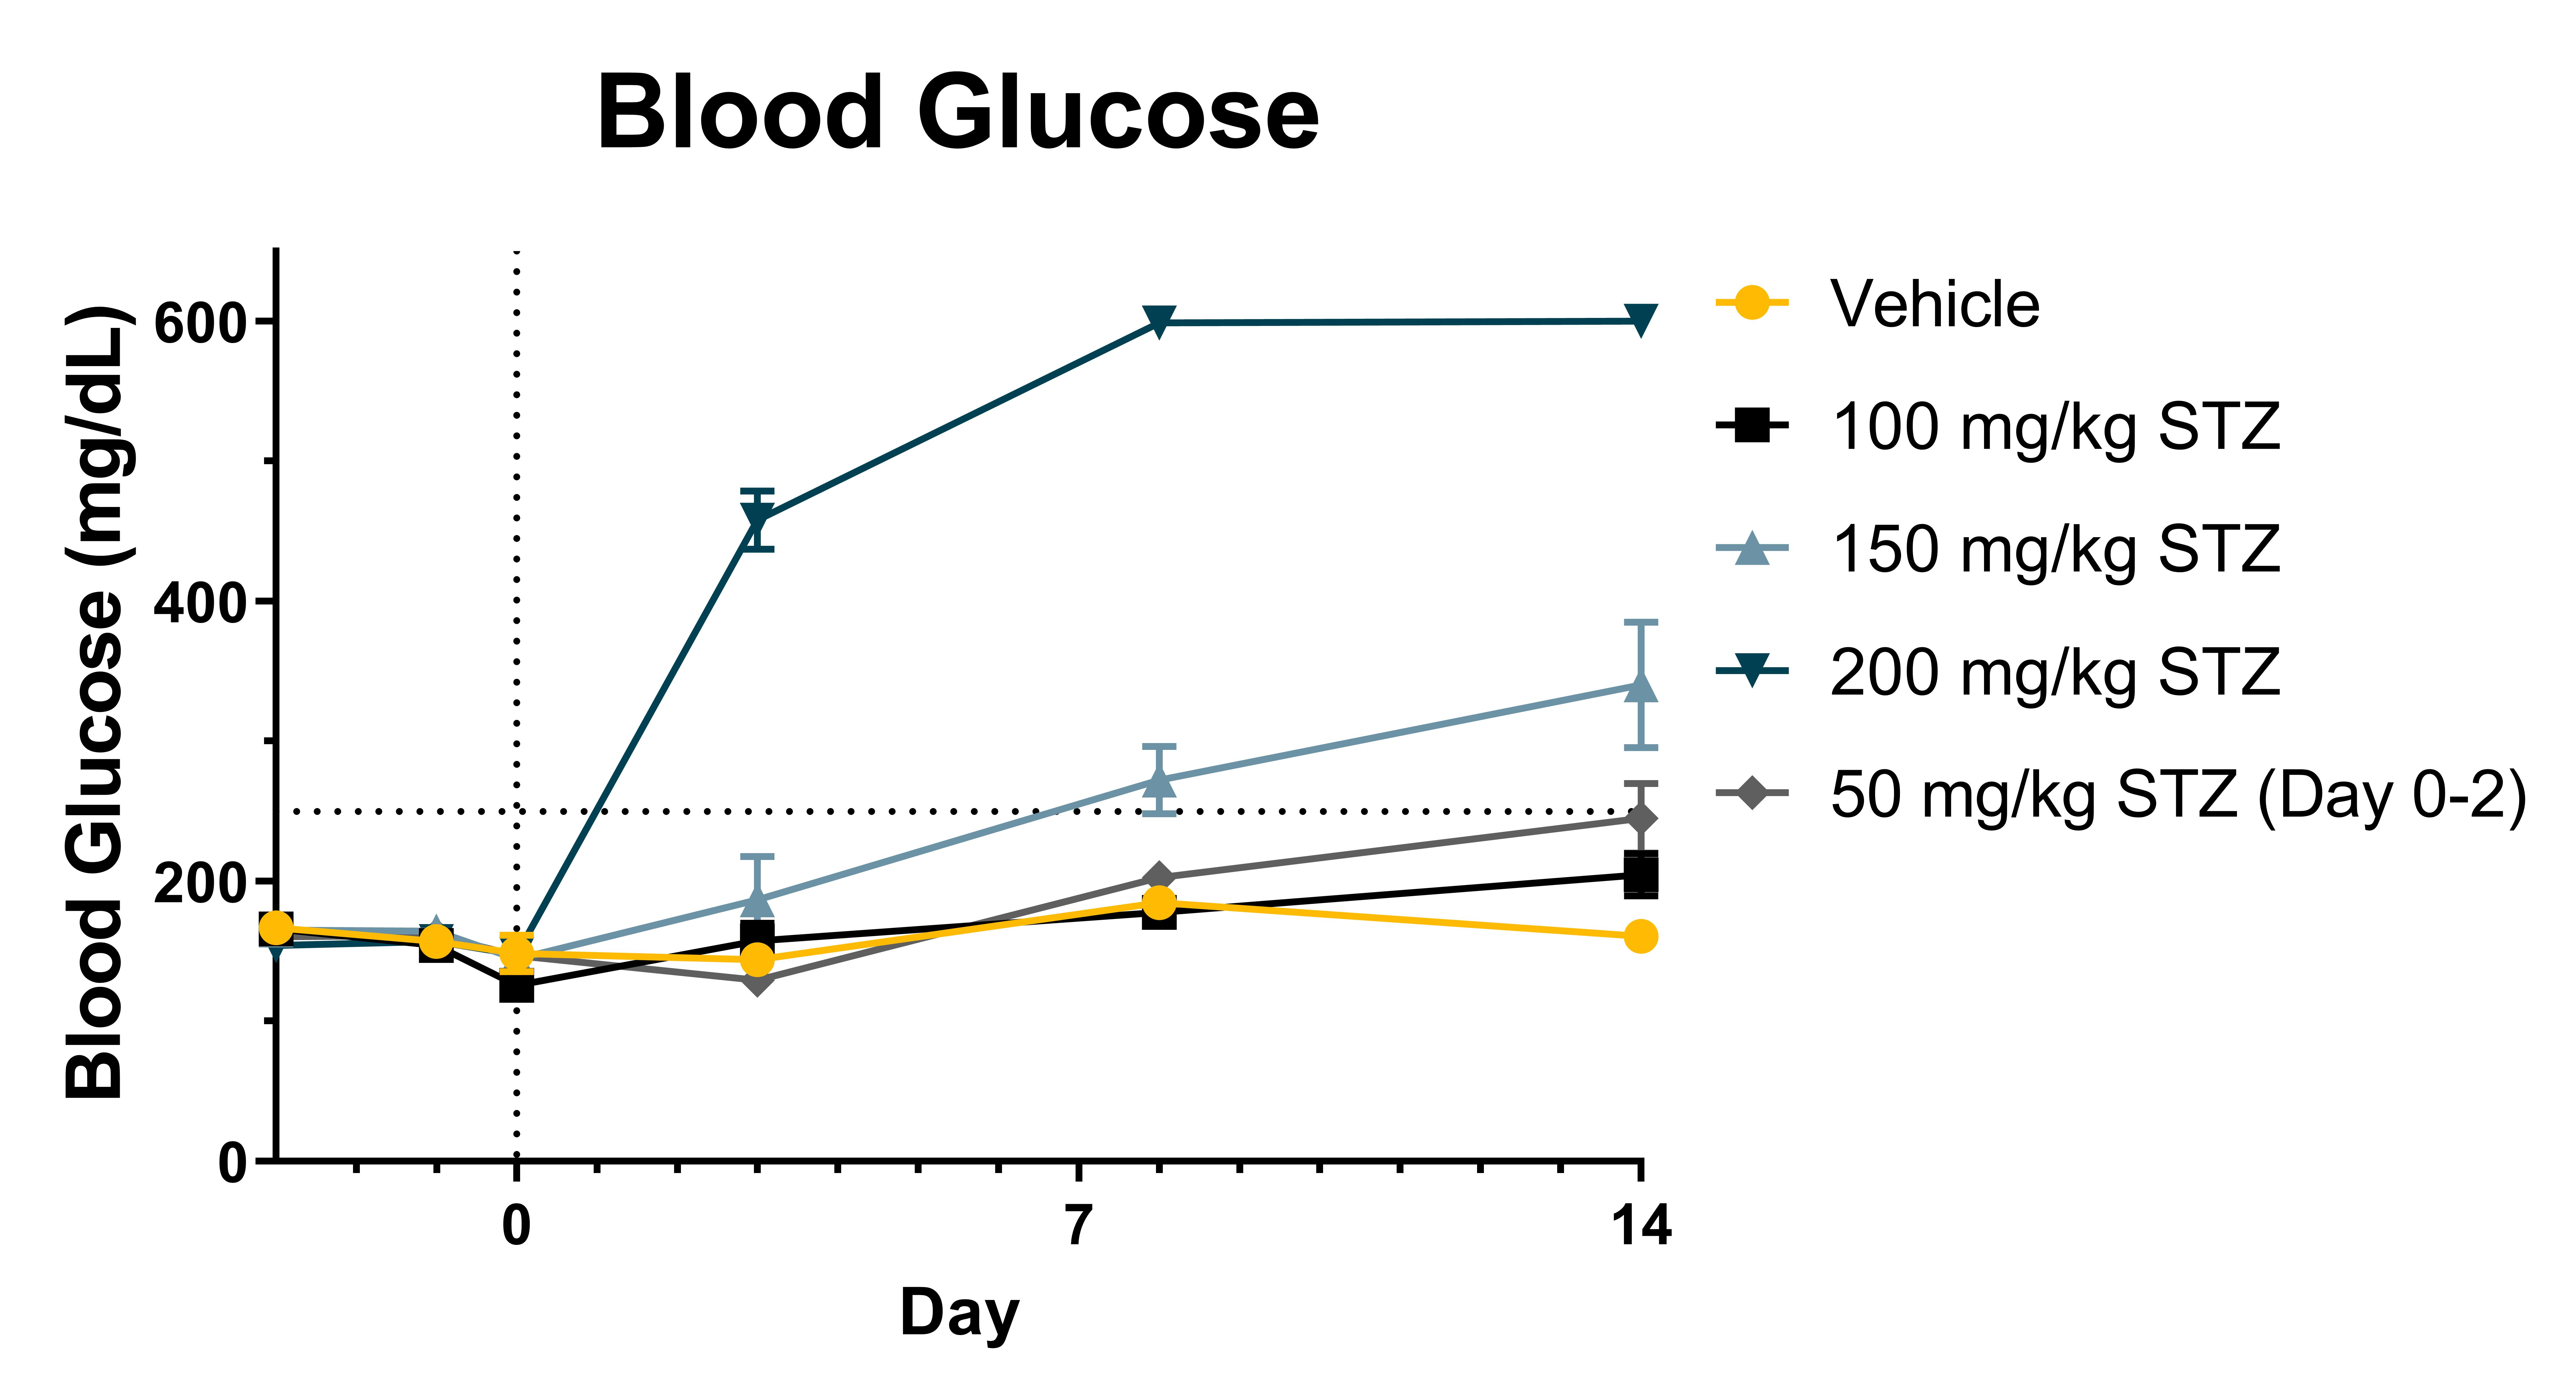 Blood Glucose Levels in C57Bl/6 mice that have been administered different amounts of STZ